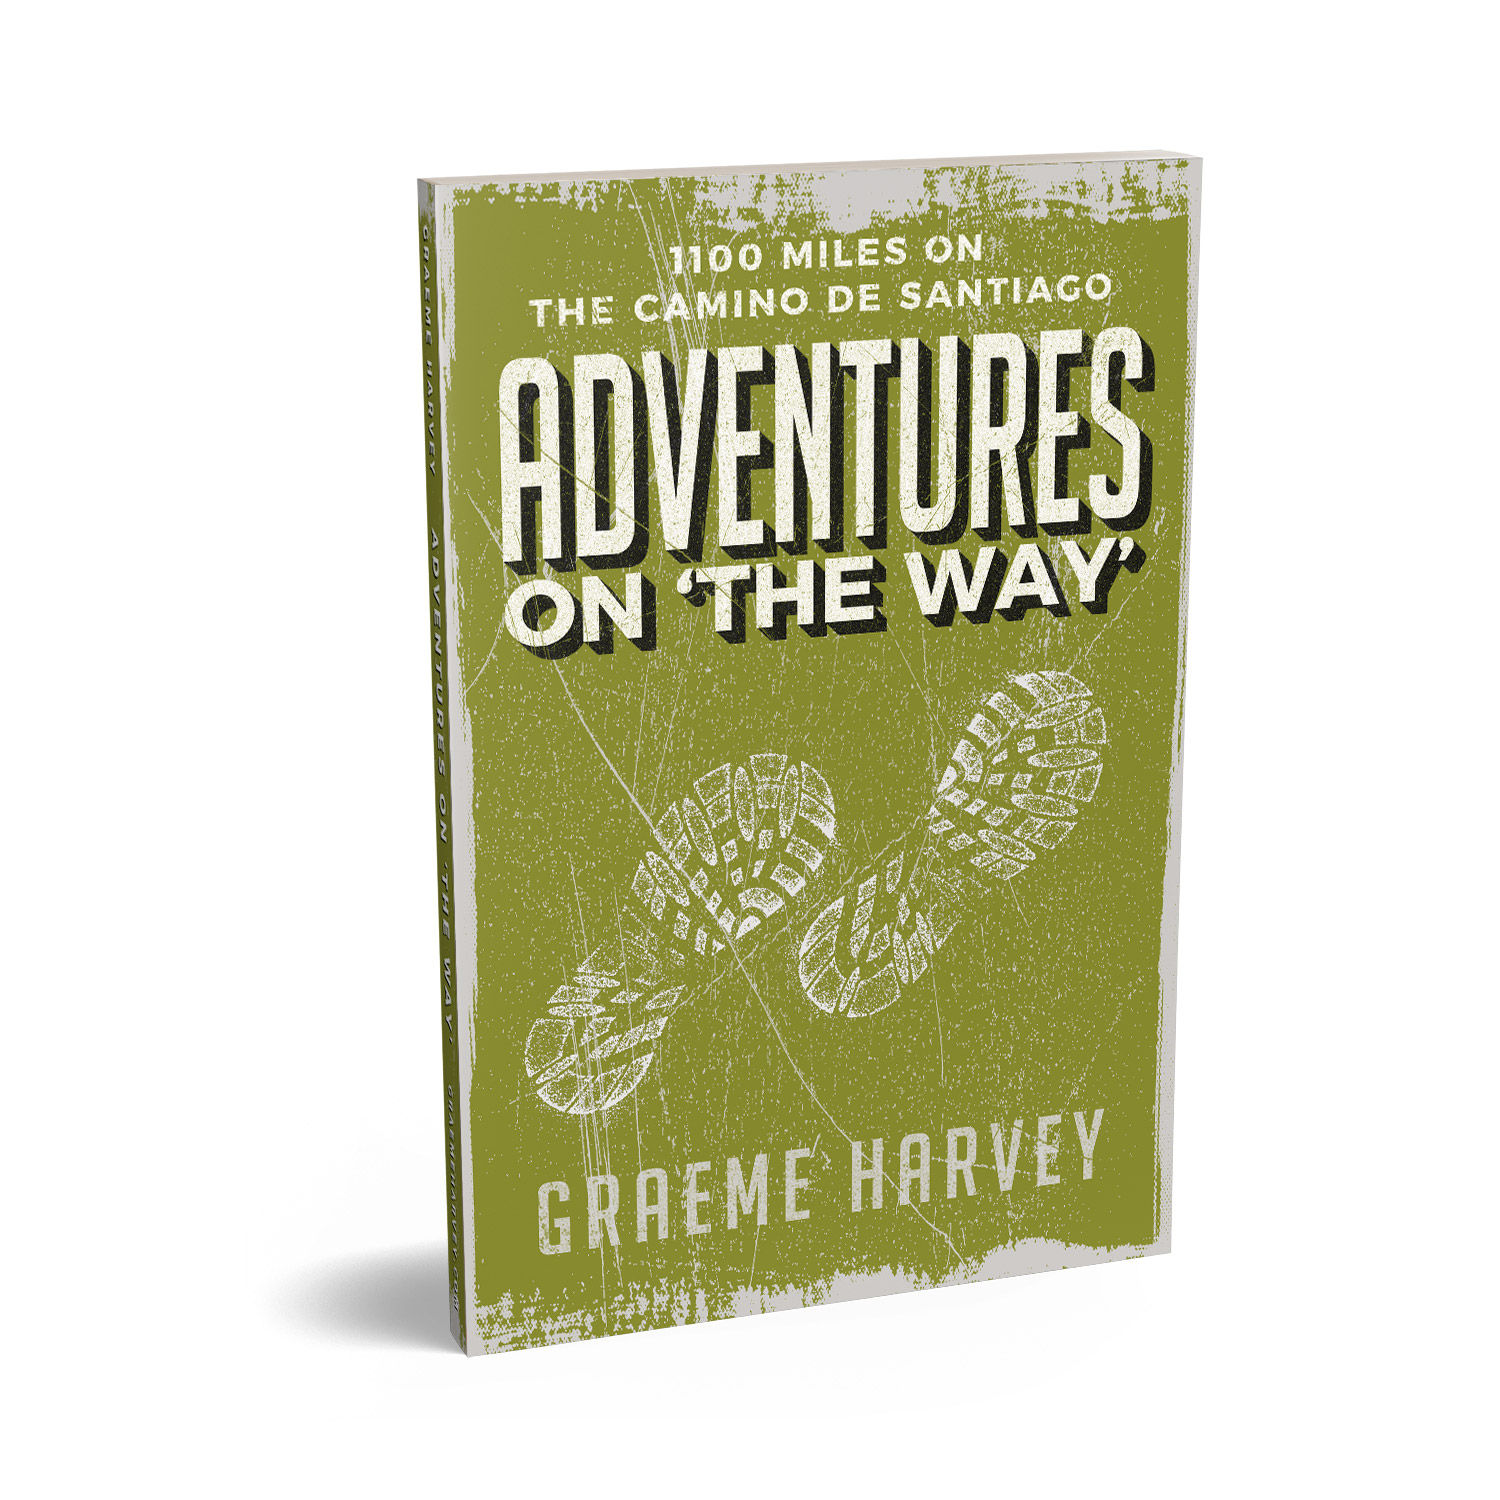 Various books of hiking, walking, running and trekking across some challenging tracts of land. The author is Graeme Harvey. The book cover designs are by Mark Thomas. To learn more about what Mark could do for your book, please visit coverness.com.